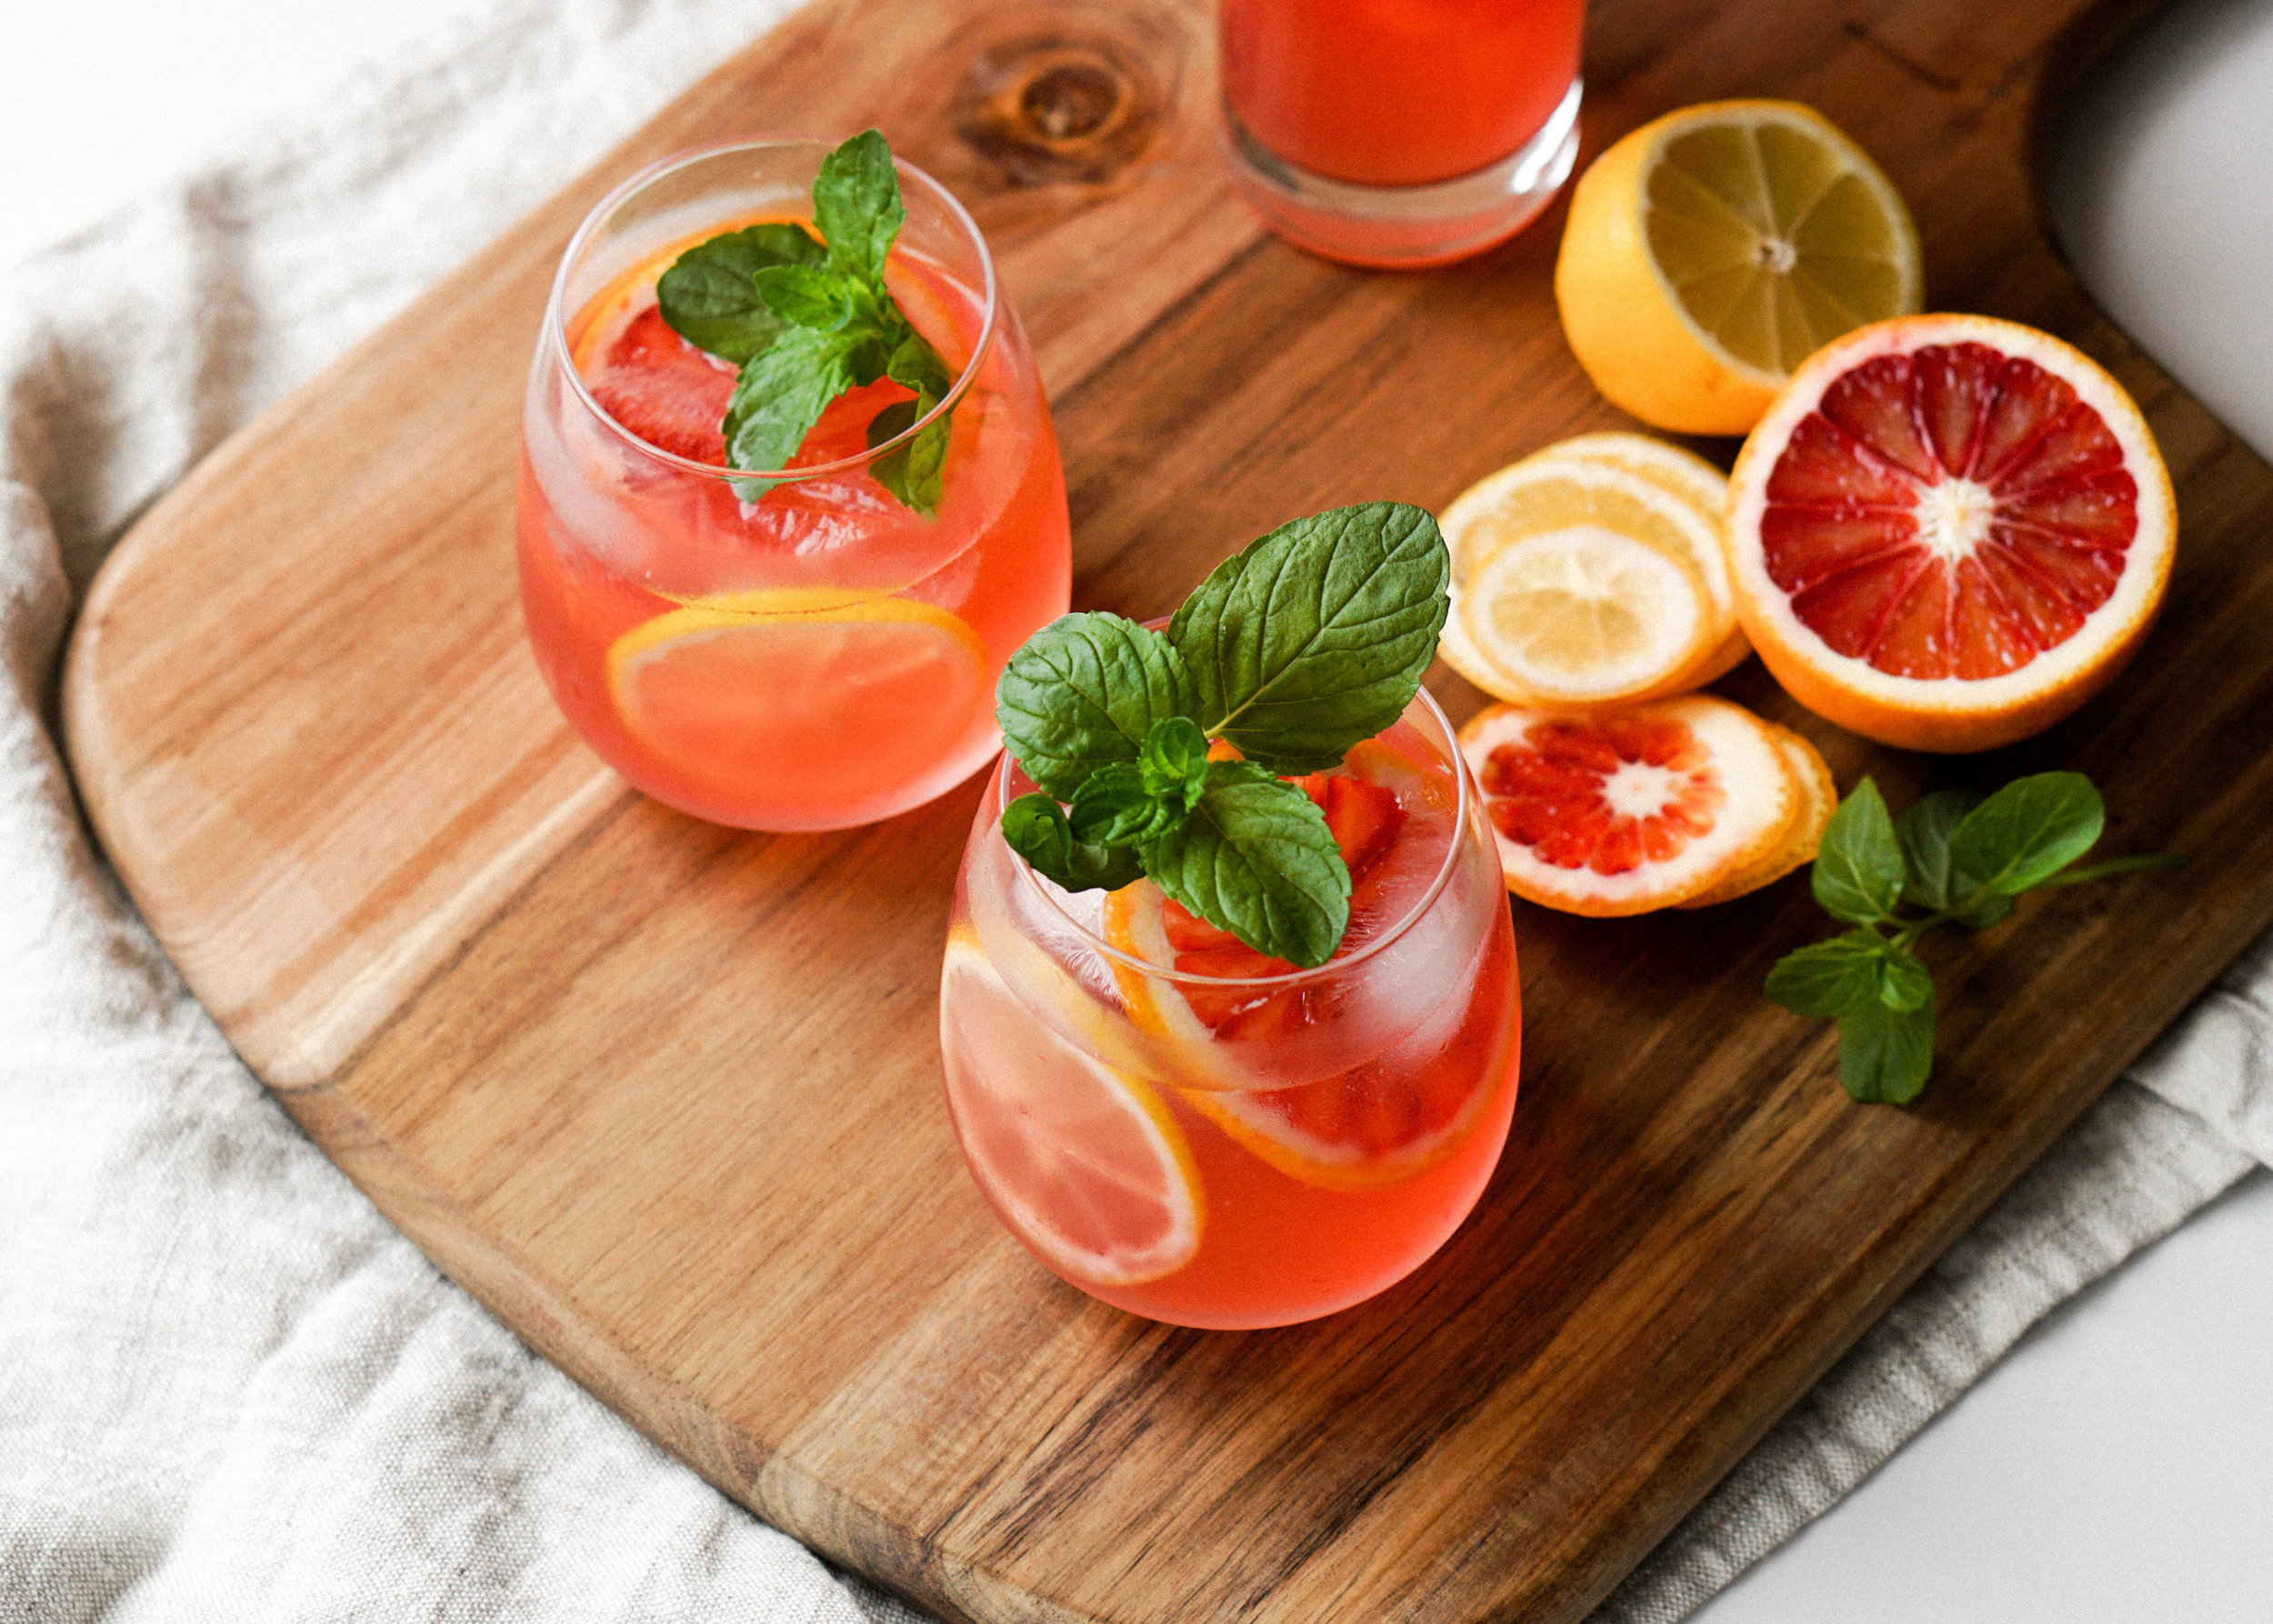 Easy and Simple Blood Orange and Mint Lemonade https://eatchofood.com/blog/2019/1/13/blood-orange-and-mint-lemonade